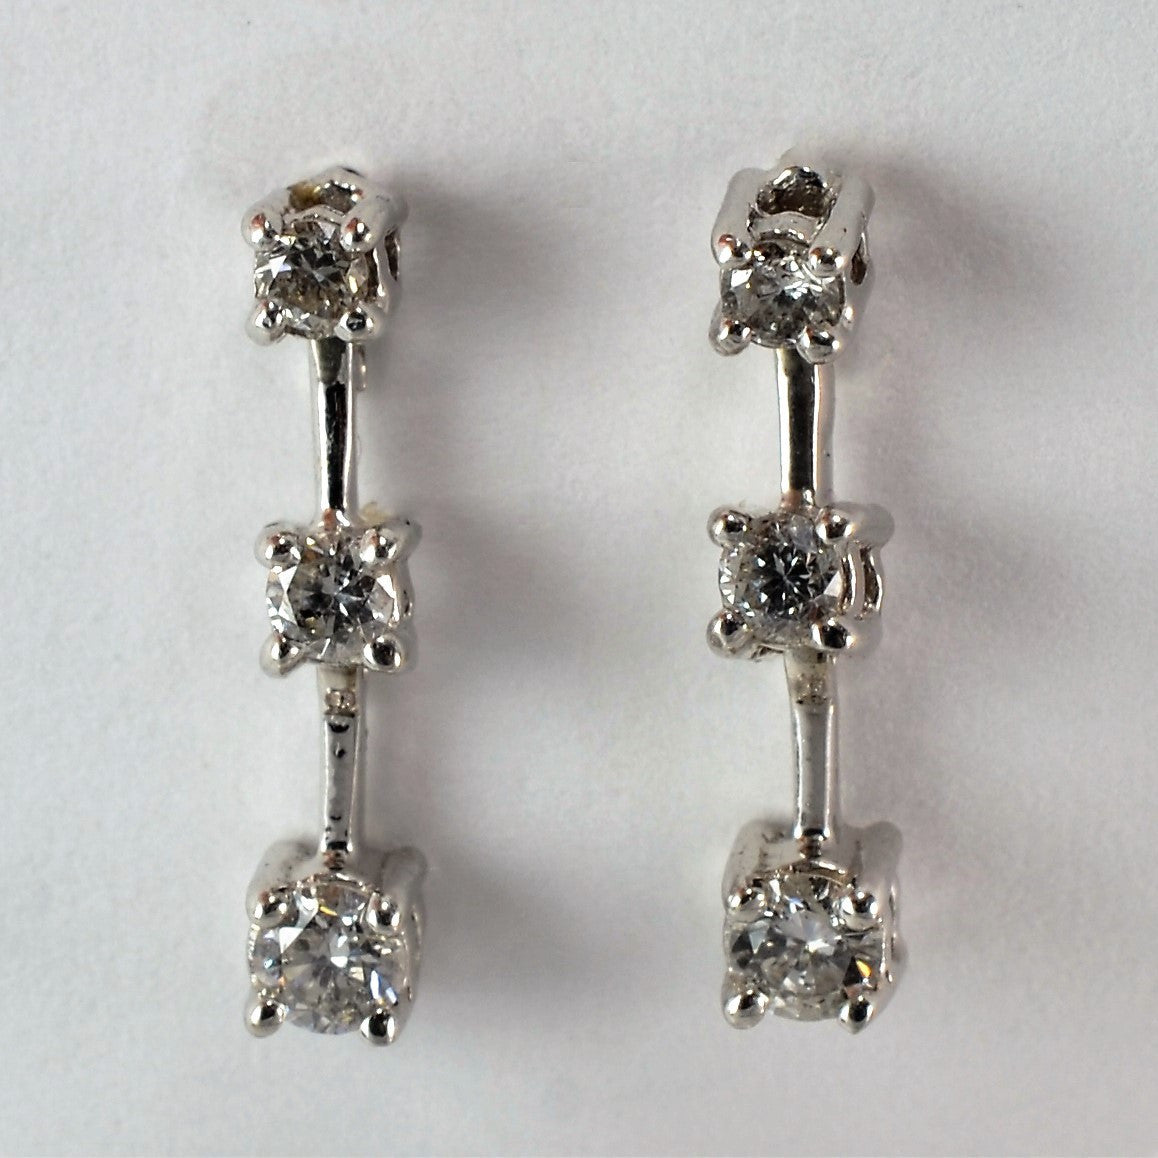 Petite Diamond Drop Stud Earrings | 0.15 ctw |